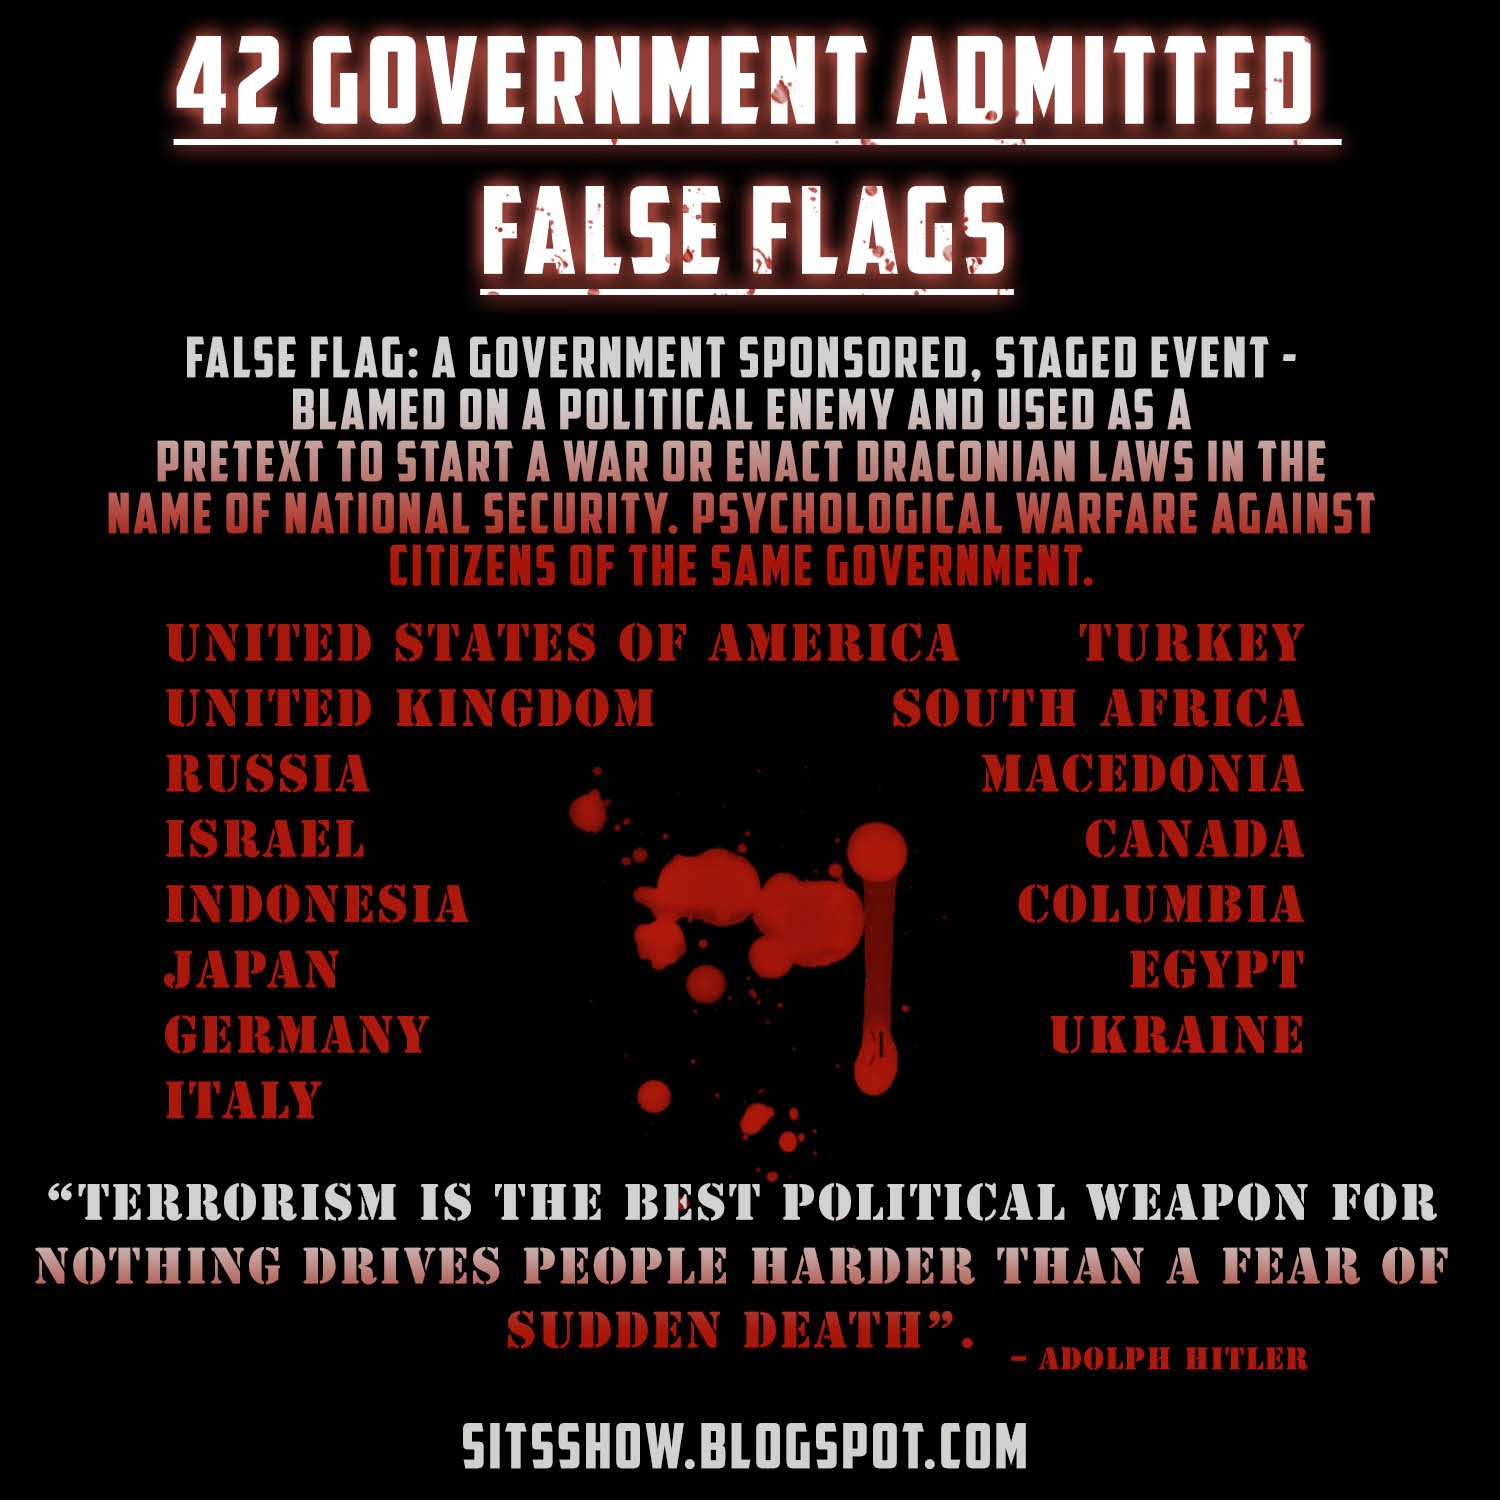 200c0-42falseflags